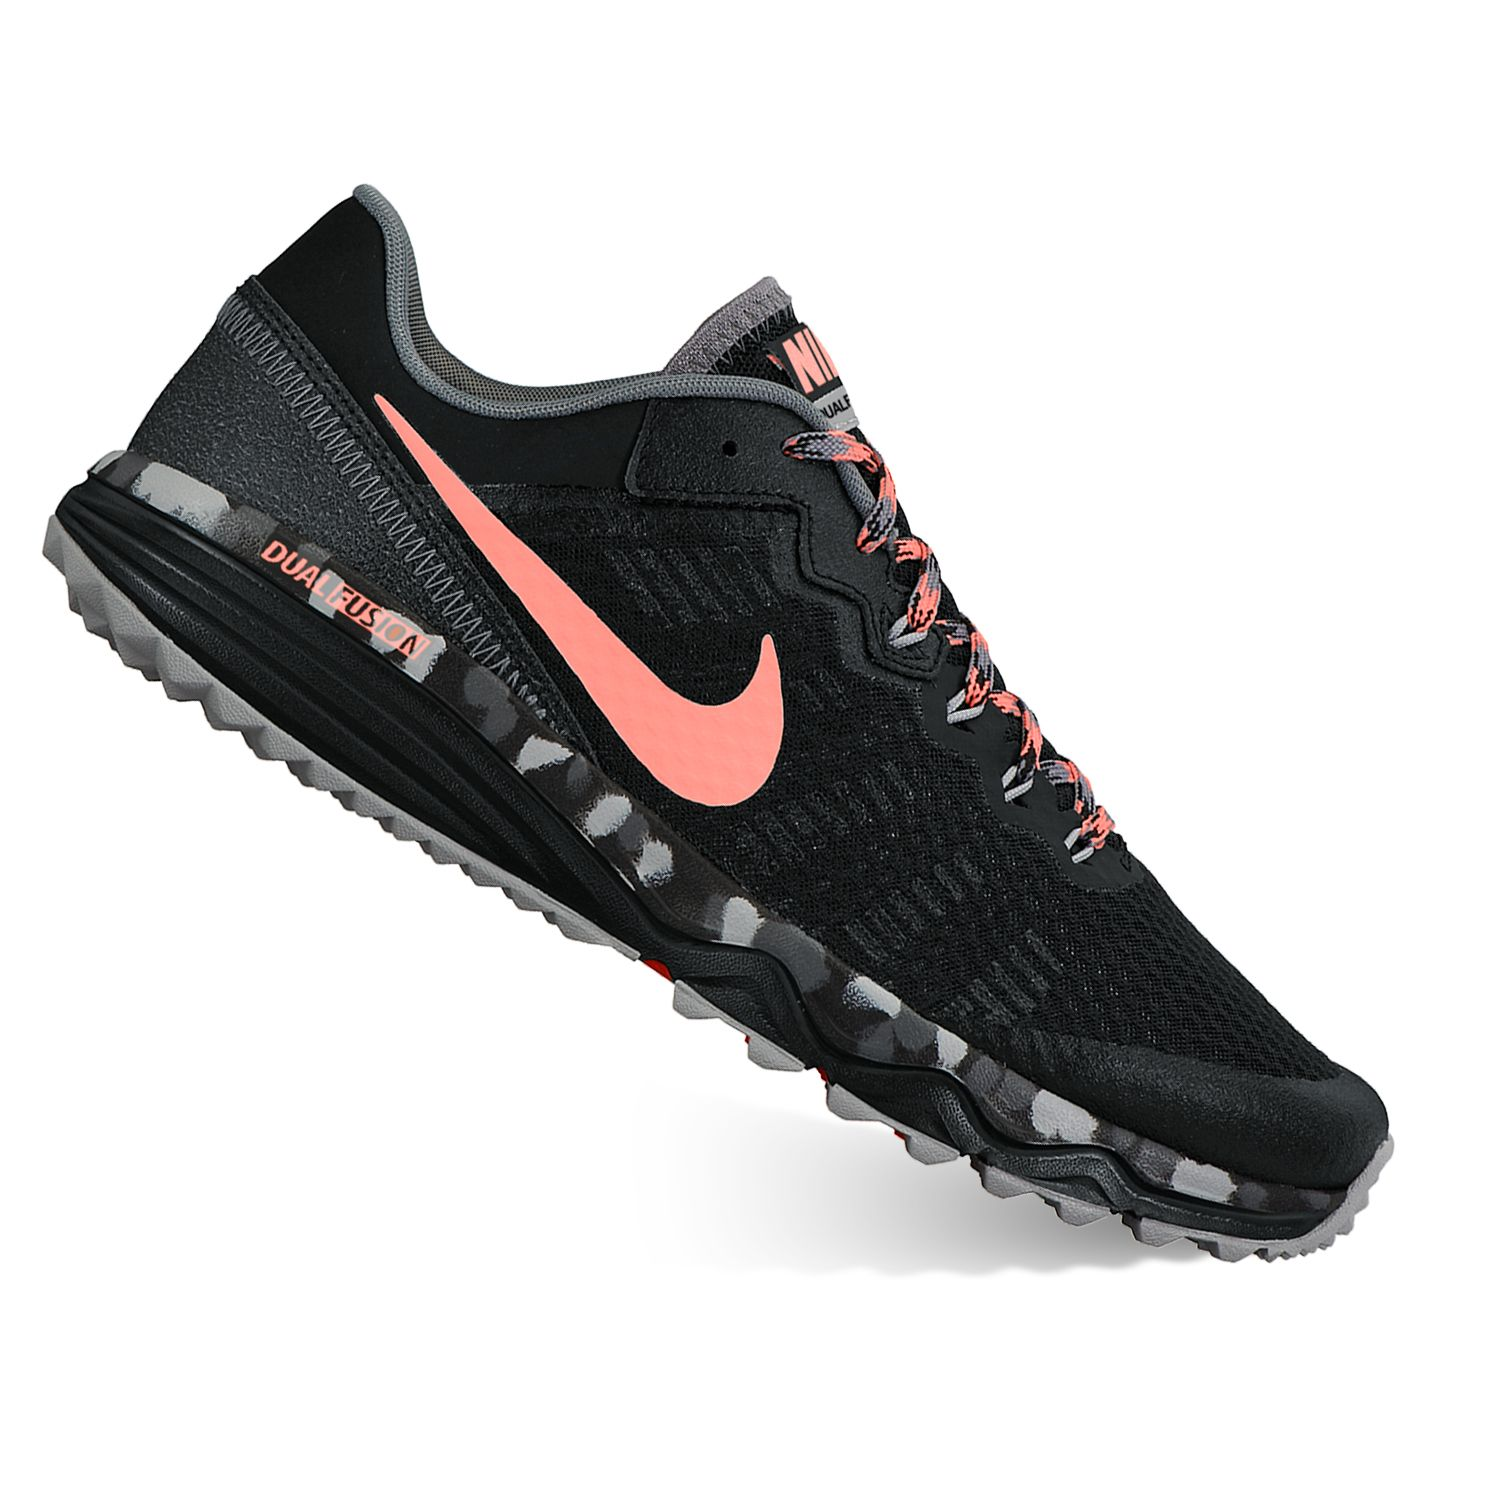 93840afae53 Trail Running Shoes